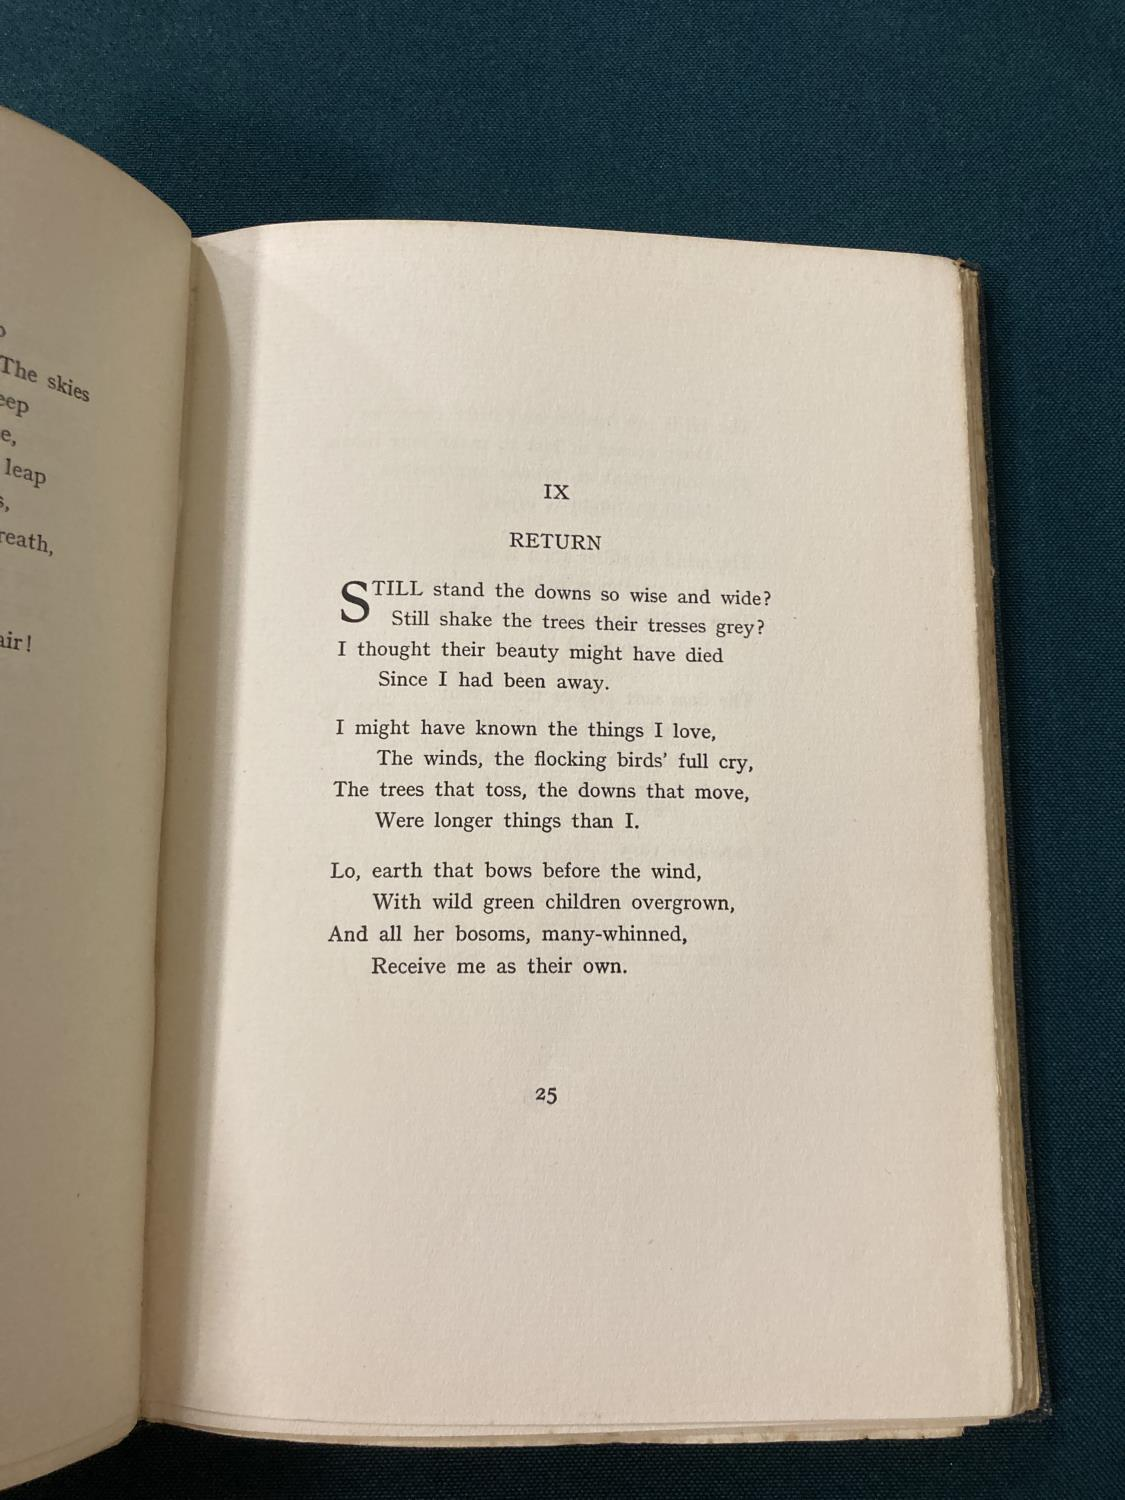 Sorley, Charles Hamilton. Marlborough and other poems, first edition, photographic portrait - Image 9 of 9